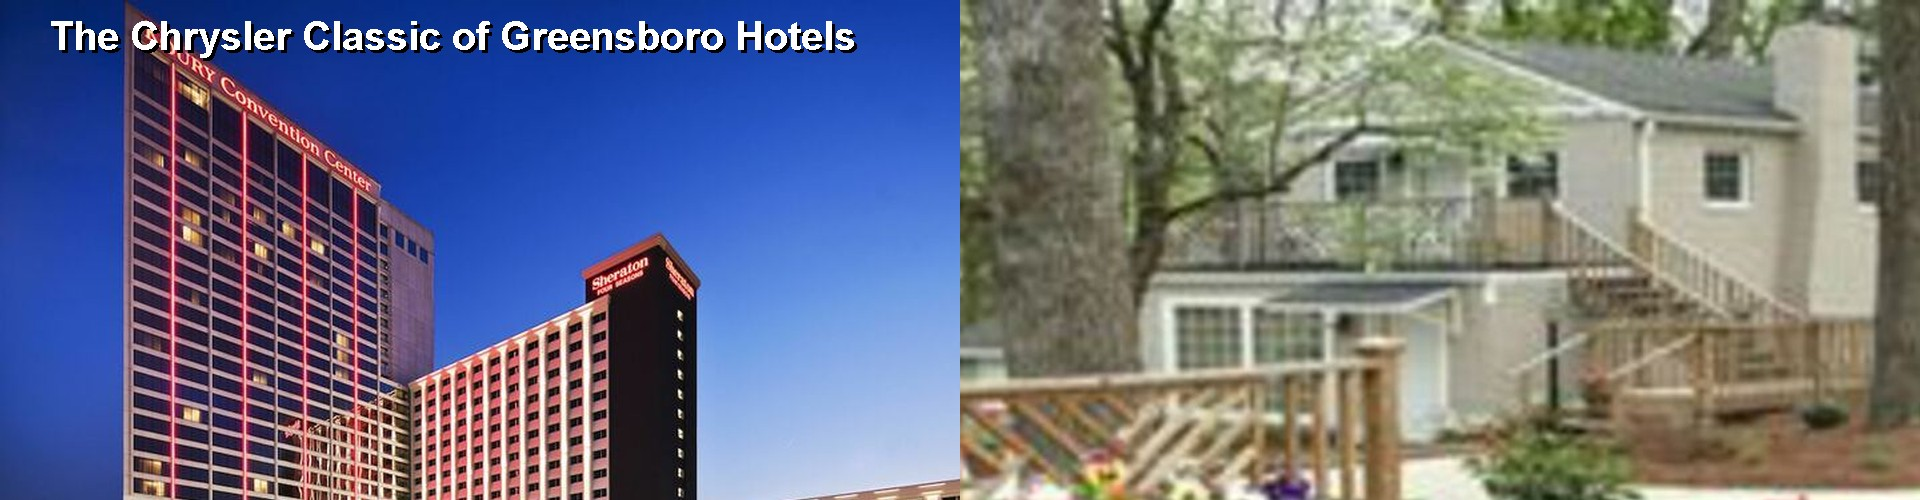 3 Best Hotels near The Chrysler Classic of Greensboro